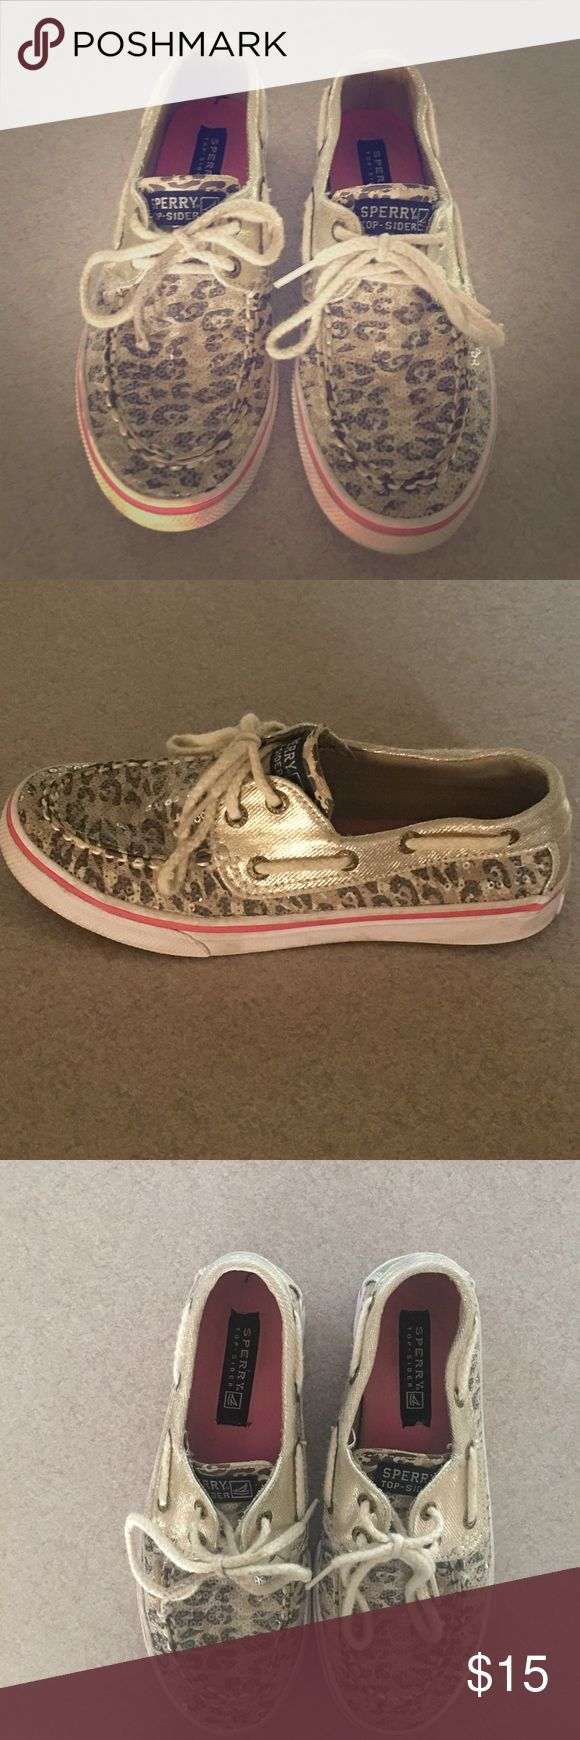 Little Girl Sperry's Very cute leopard print Sperry's for little girls!! Great condition Sperry Top-Sider Shoes